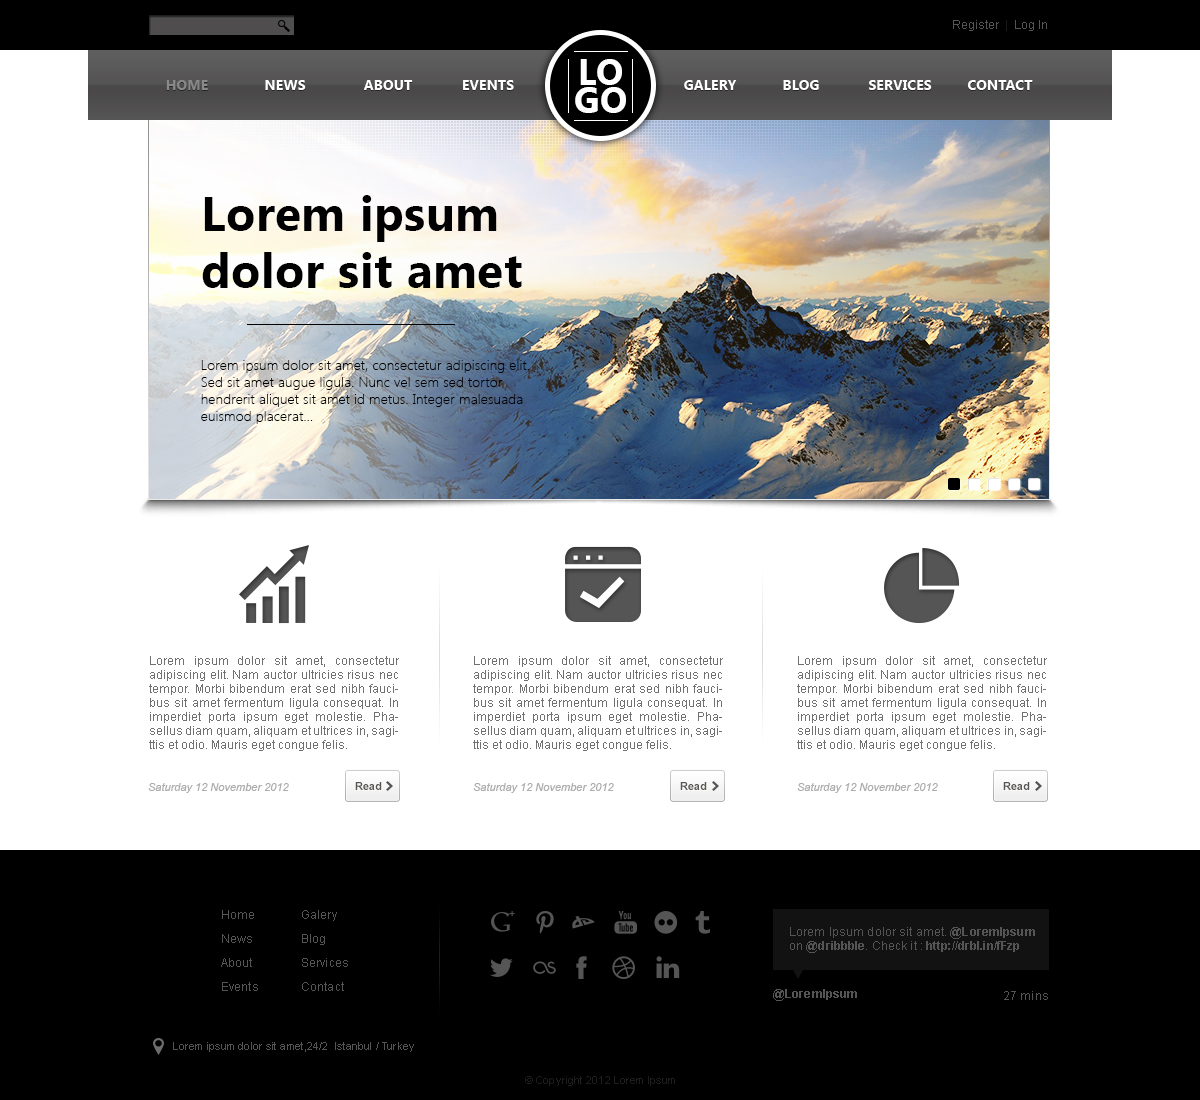 Psd Website Templates: Well-Designed PSD Website Templates For Free Download